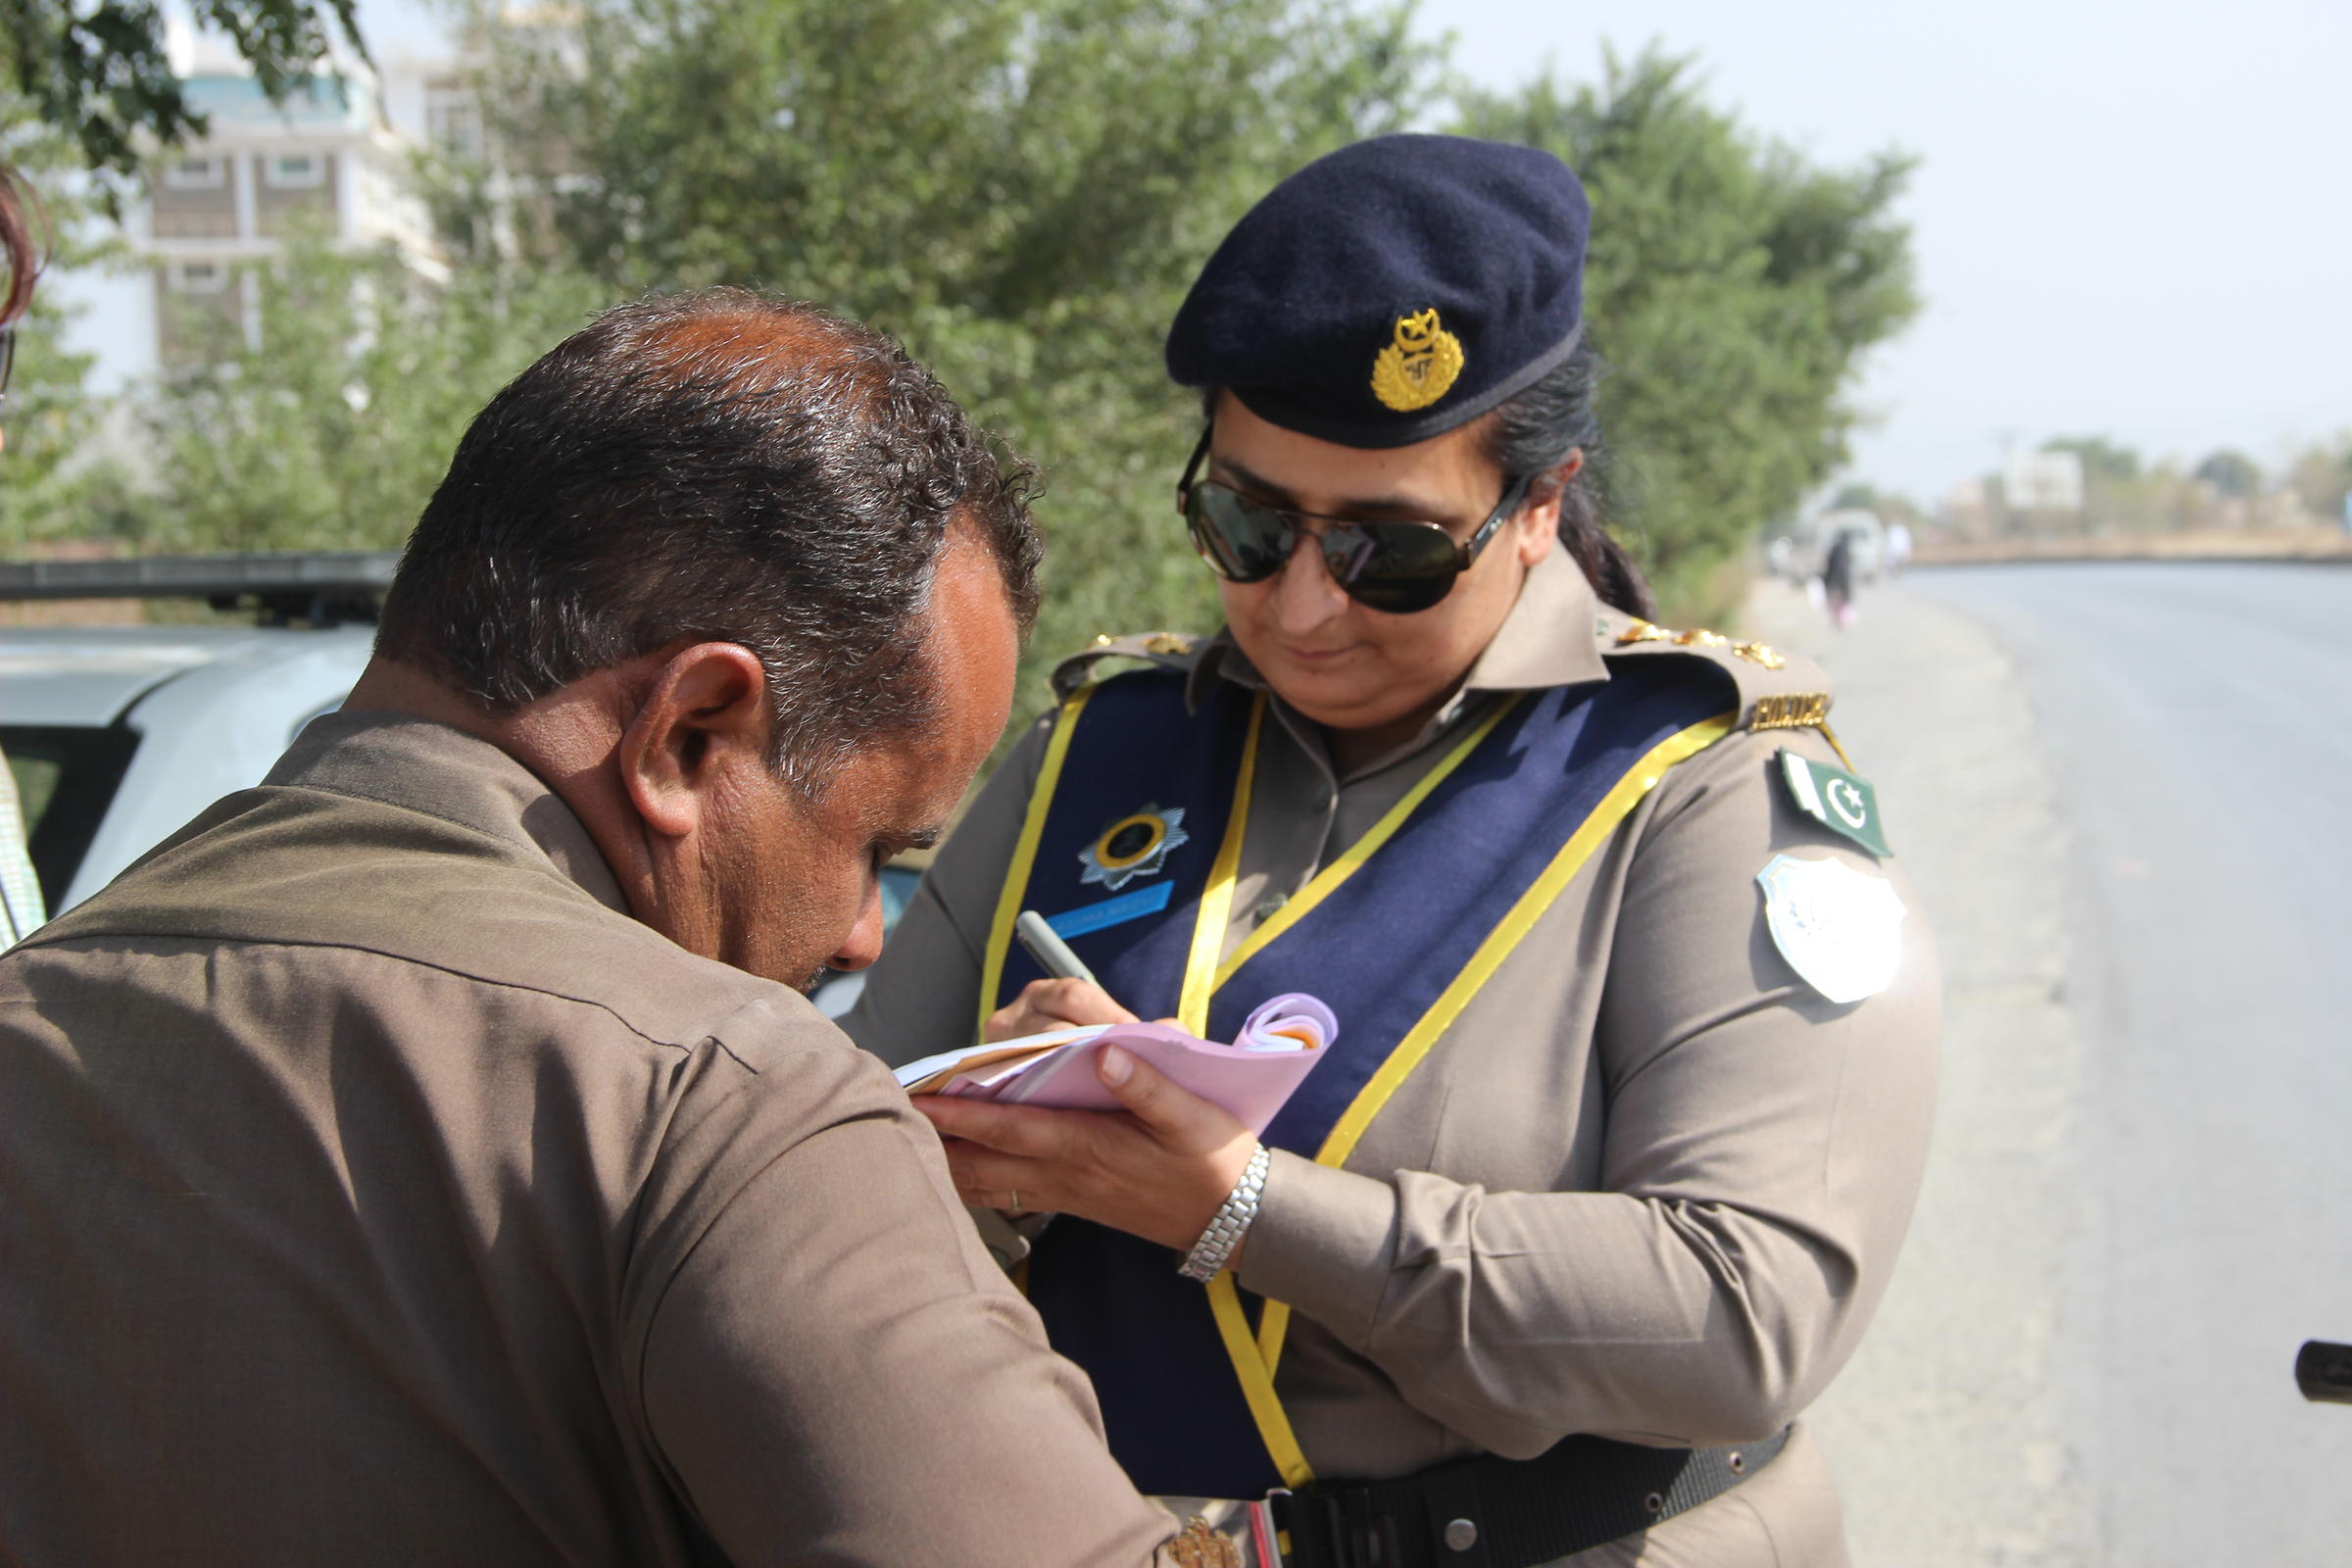 This Pakistani police officer is on the leading edge of a trend